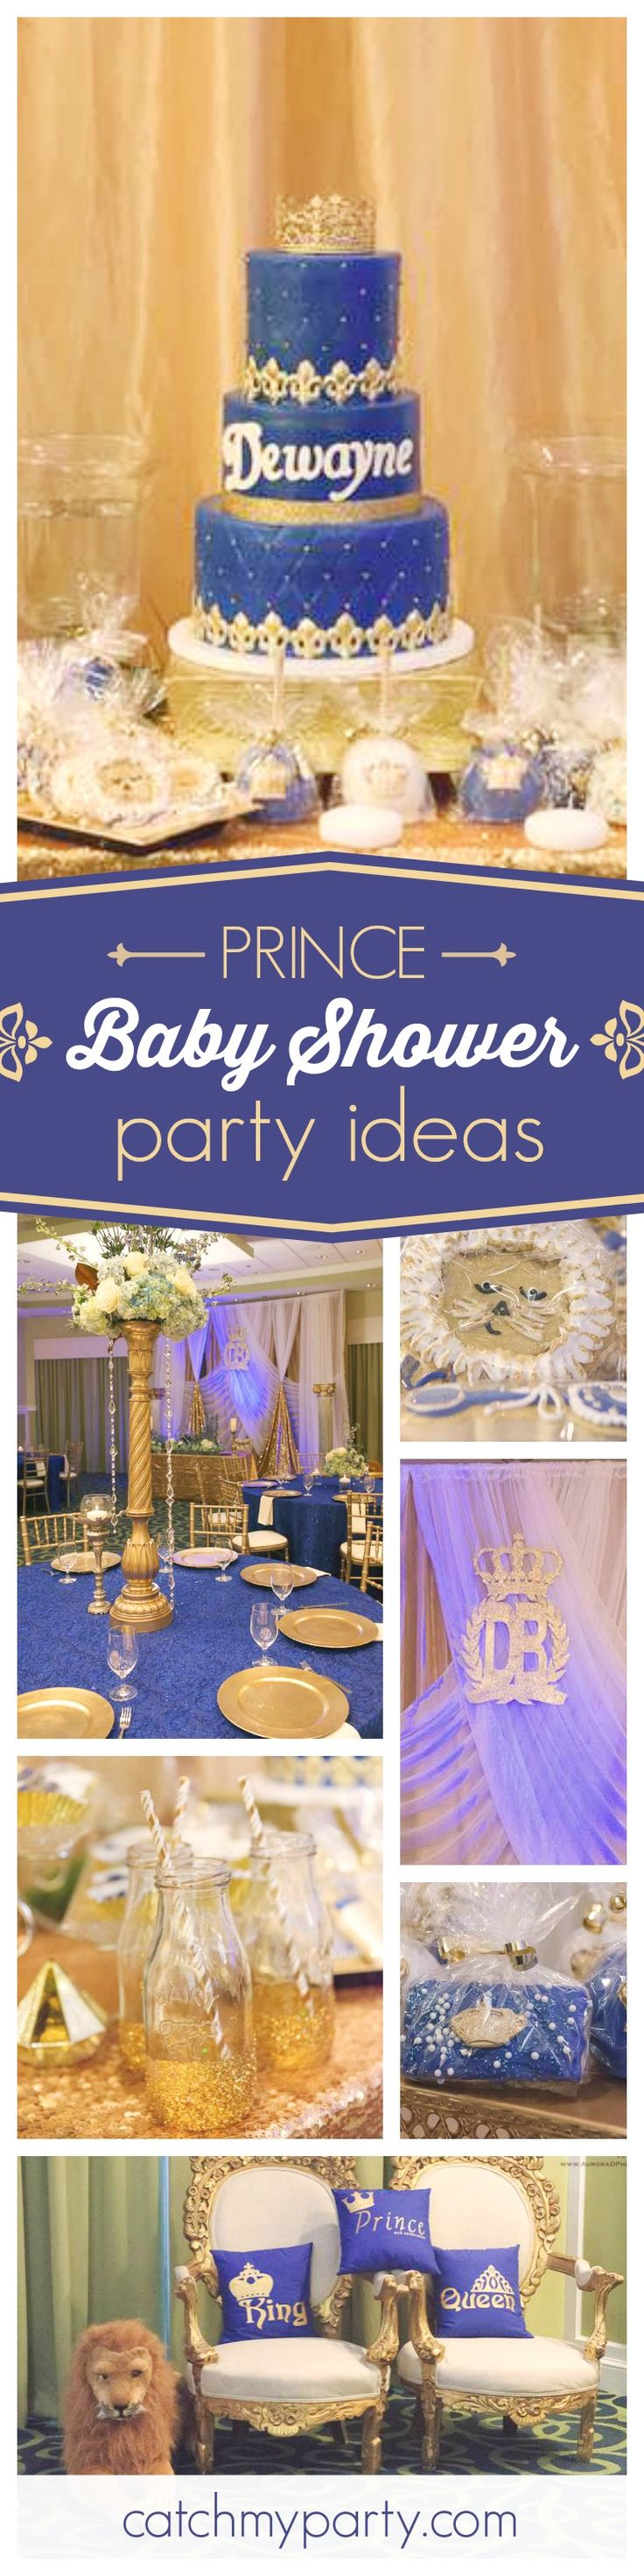 You won't want to miss this regal prince baby shower! The royal dessert table is so elegant!  See more party ideas and share yours at CatchMyParty.com